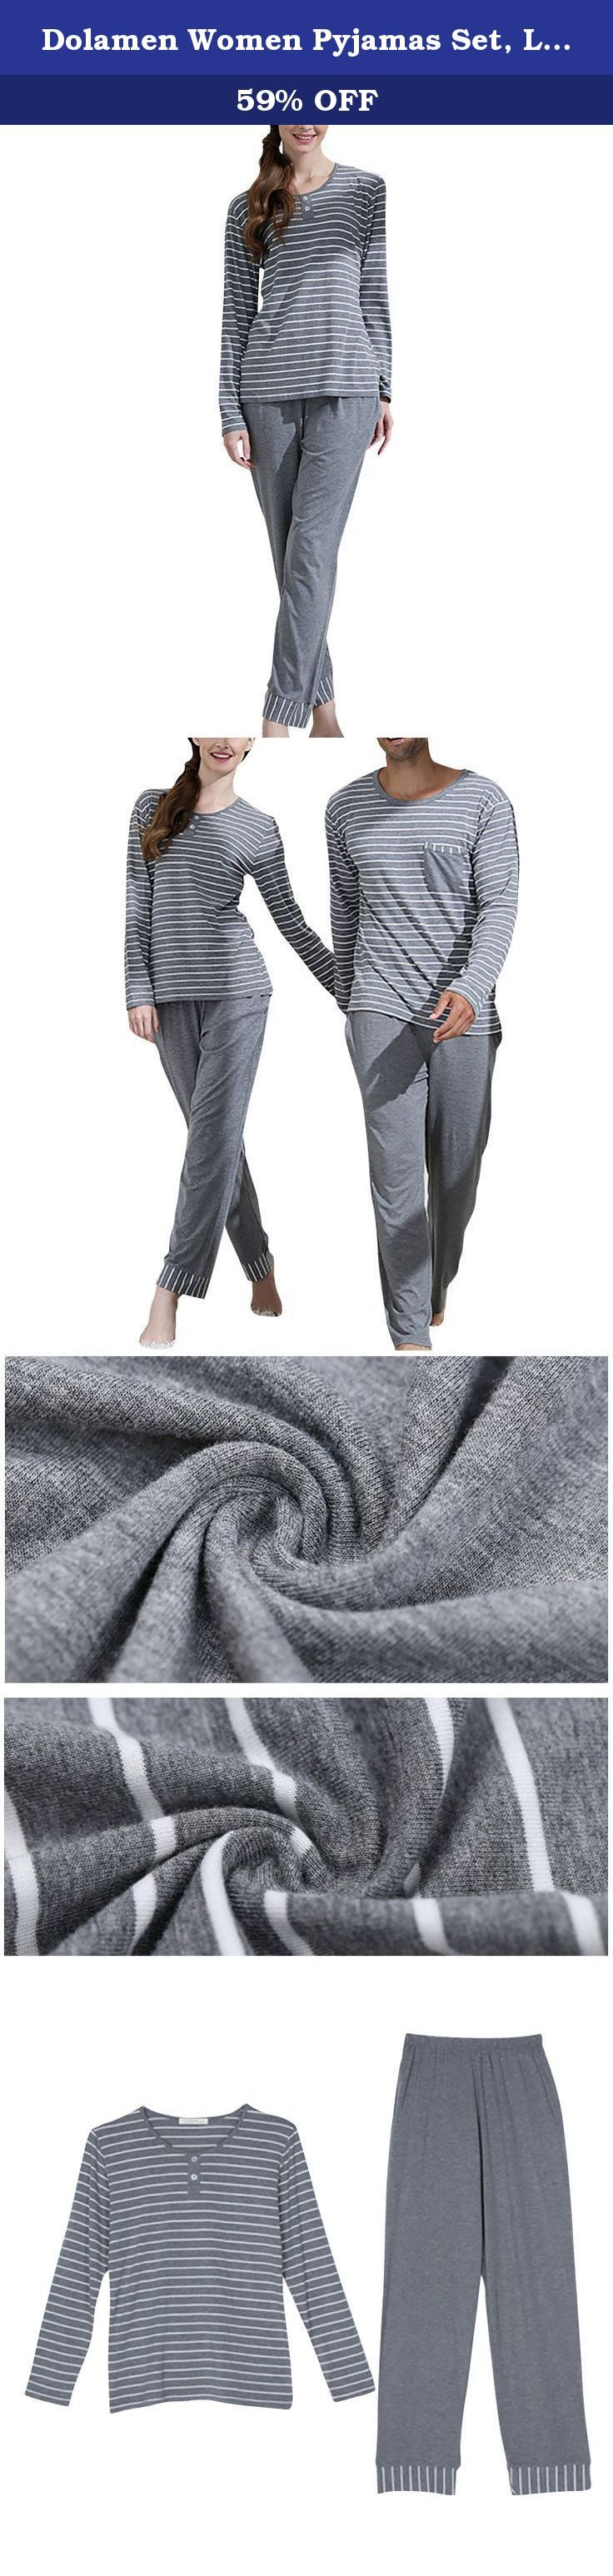 Dolamen Women Pyjamas Set, Ladies Soft Warm Winter Pyjamas Nightwear, Long Sleeve Top & Bottoms, Stripe Couples Pyjamas (XX-Large, Gray). Dolamen Women Pyjamas Set, Ladies Soft Warm Winter Pyjamas Nightwear, Long Sleeve Top & Bottoms, Stripe Couples Pyjamas Women's stylish, soft and warm pyjama set. Features long sleeved top with round neck and design on the front. Long trousers with elasticated waist. The cotton blend fabric is really soft and warm helping you stay cosy this winter…